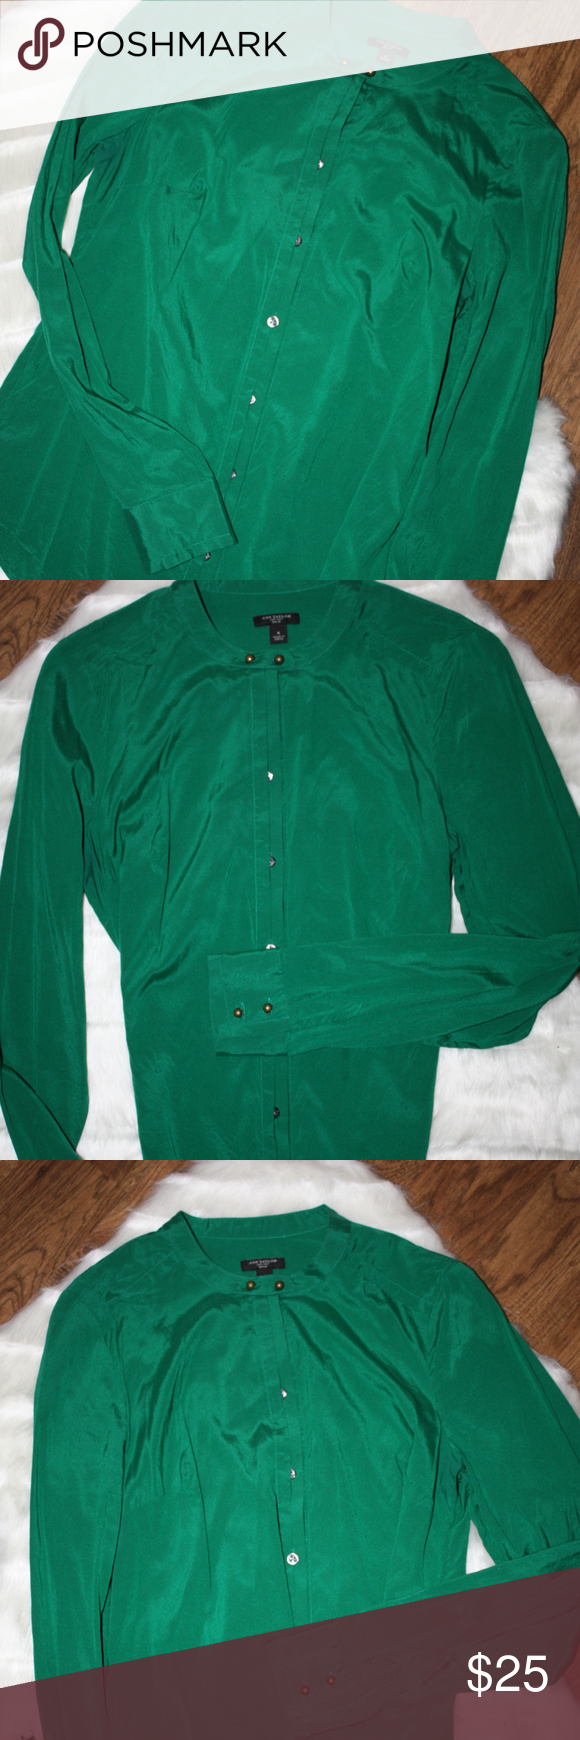 65bff88d283a0 Ann Taylor Emerald Green silk blouse This blouse is in perfect condition.  Gold double button closure at collar. Make me an offer! Ann Taylor Tops  Blouses